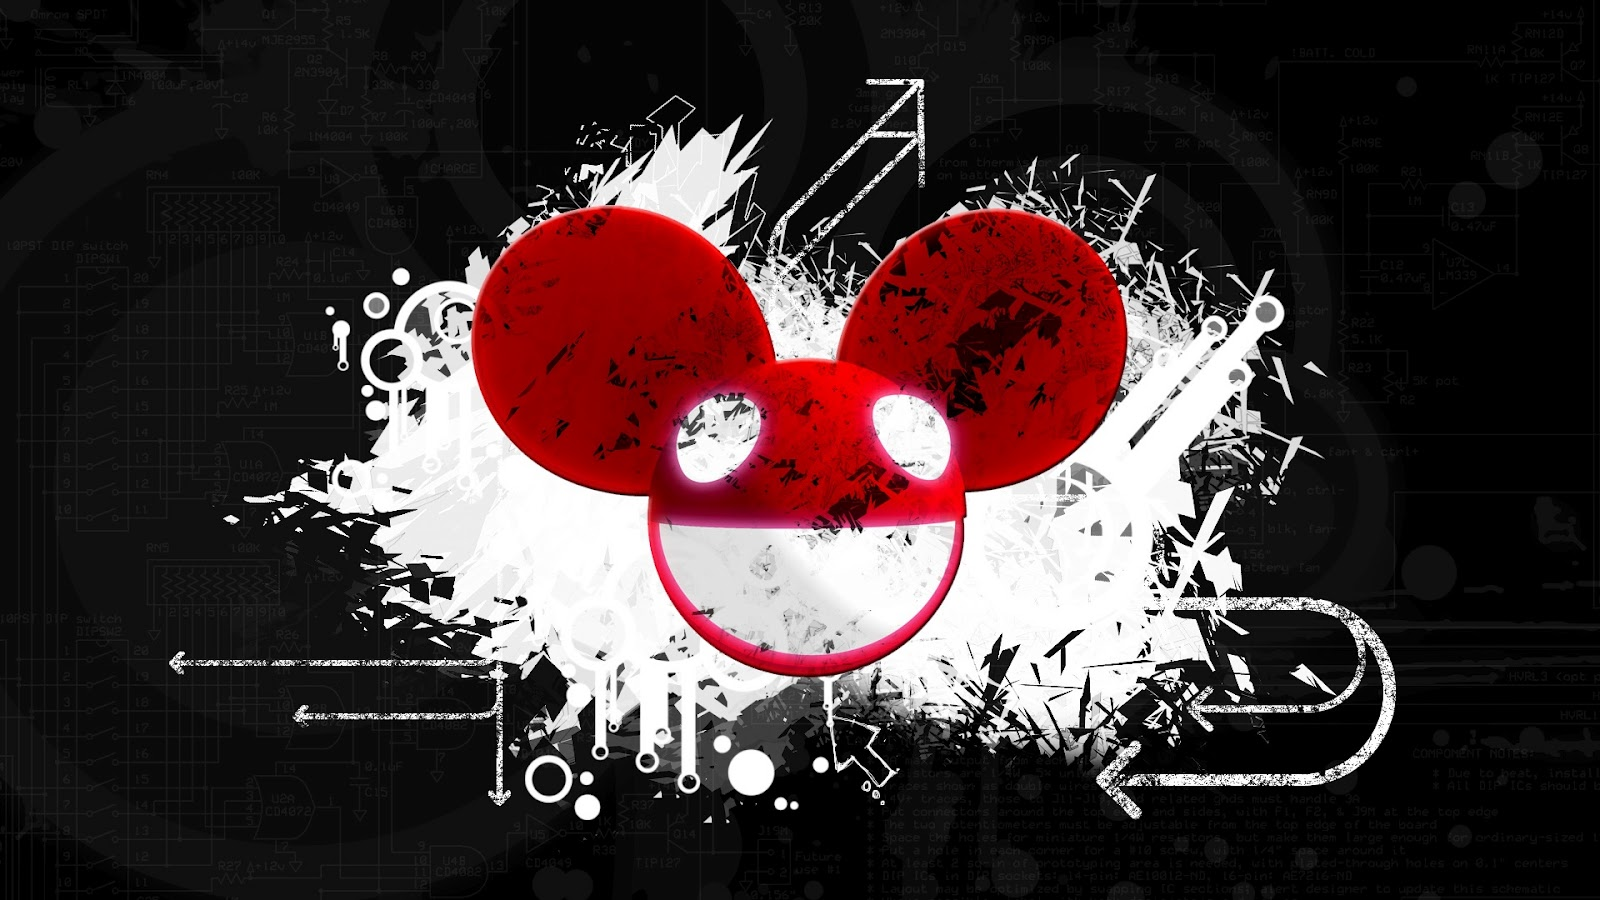 wallpaper: Deadmau5 Hd Desktop Wallpaper